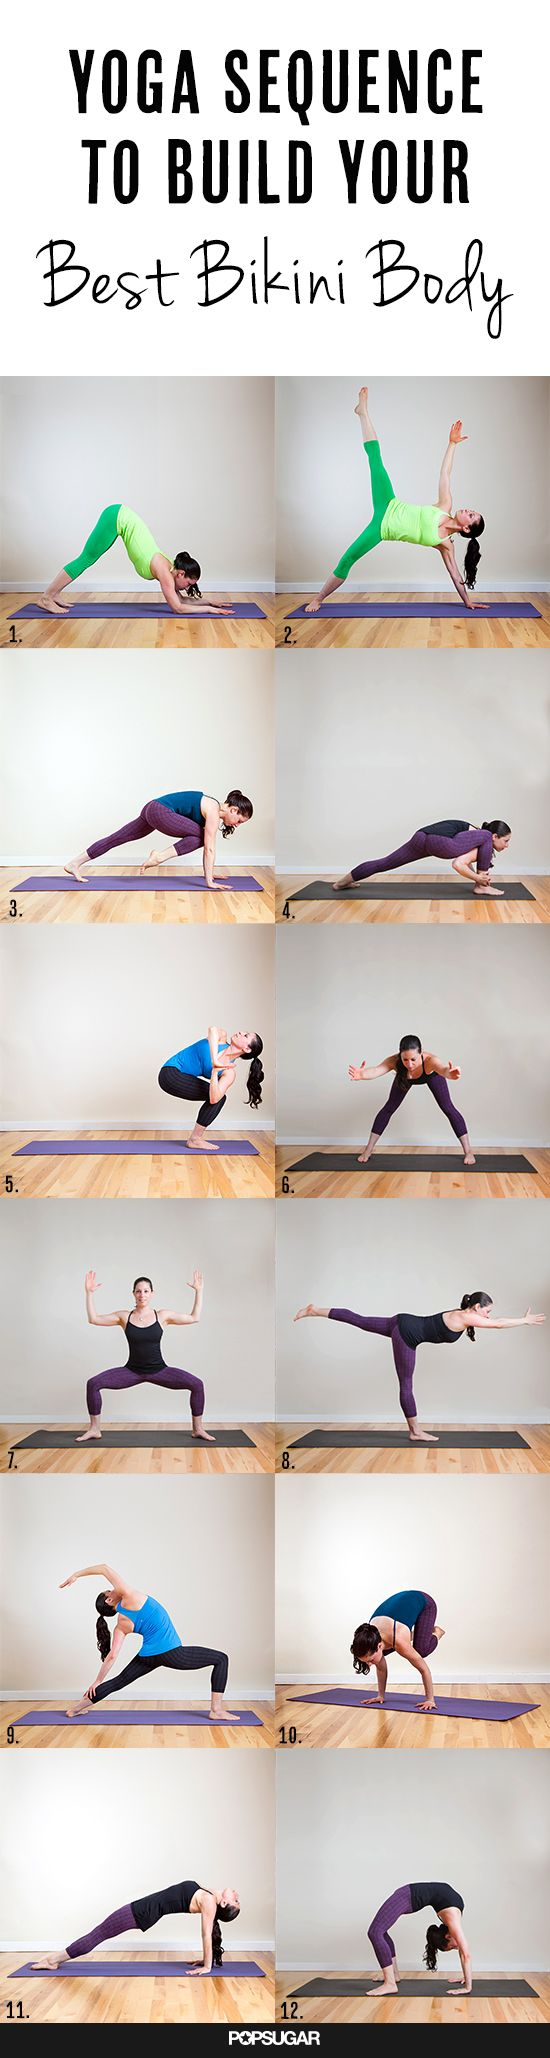 A Dynamic Yoga Sequence To Help You Build A Stronger Body Yoga Sequences Dynamic Yoga Yoga Poses